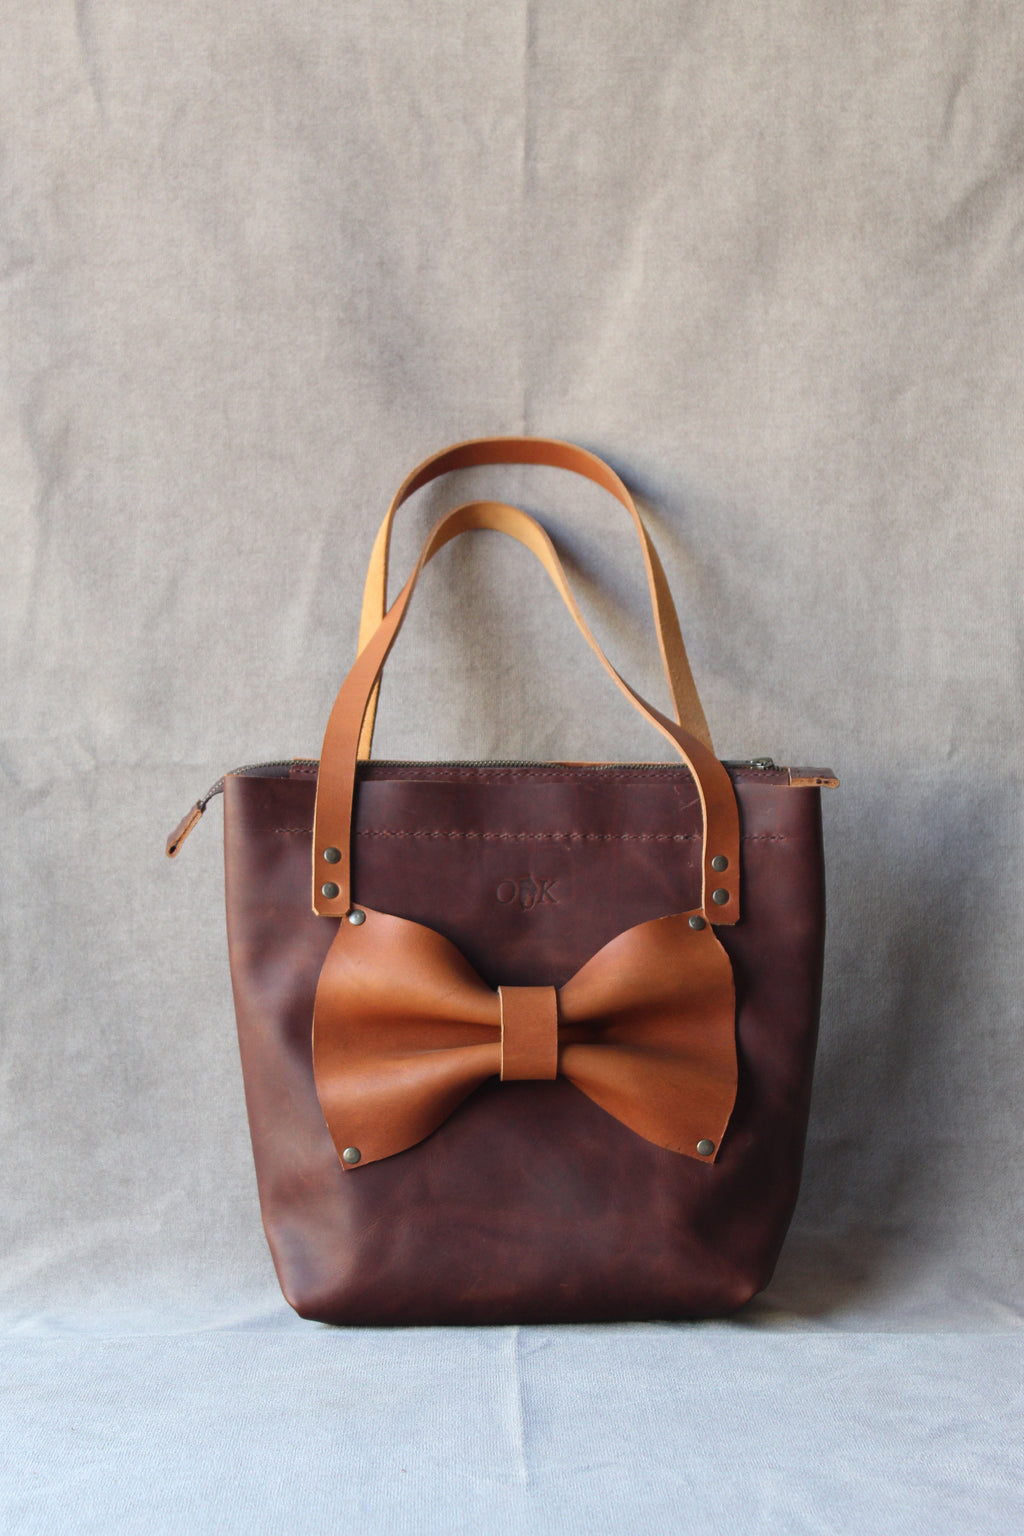 jani bow tote in dark brown with tan bow and tan straps